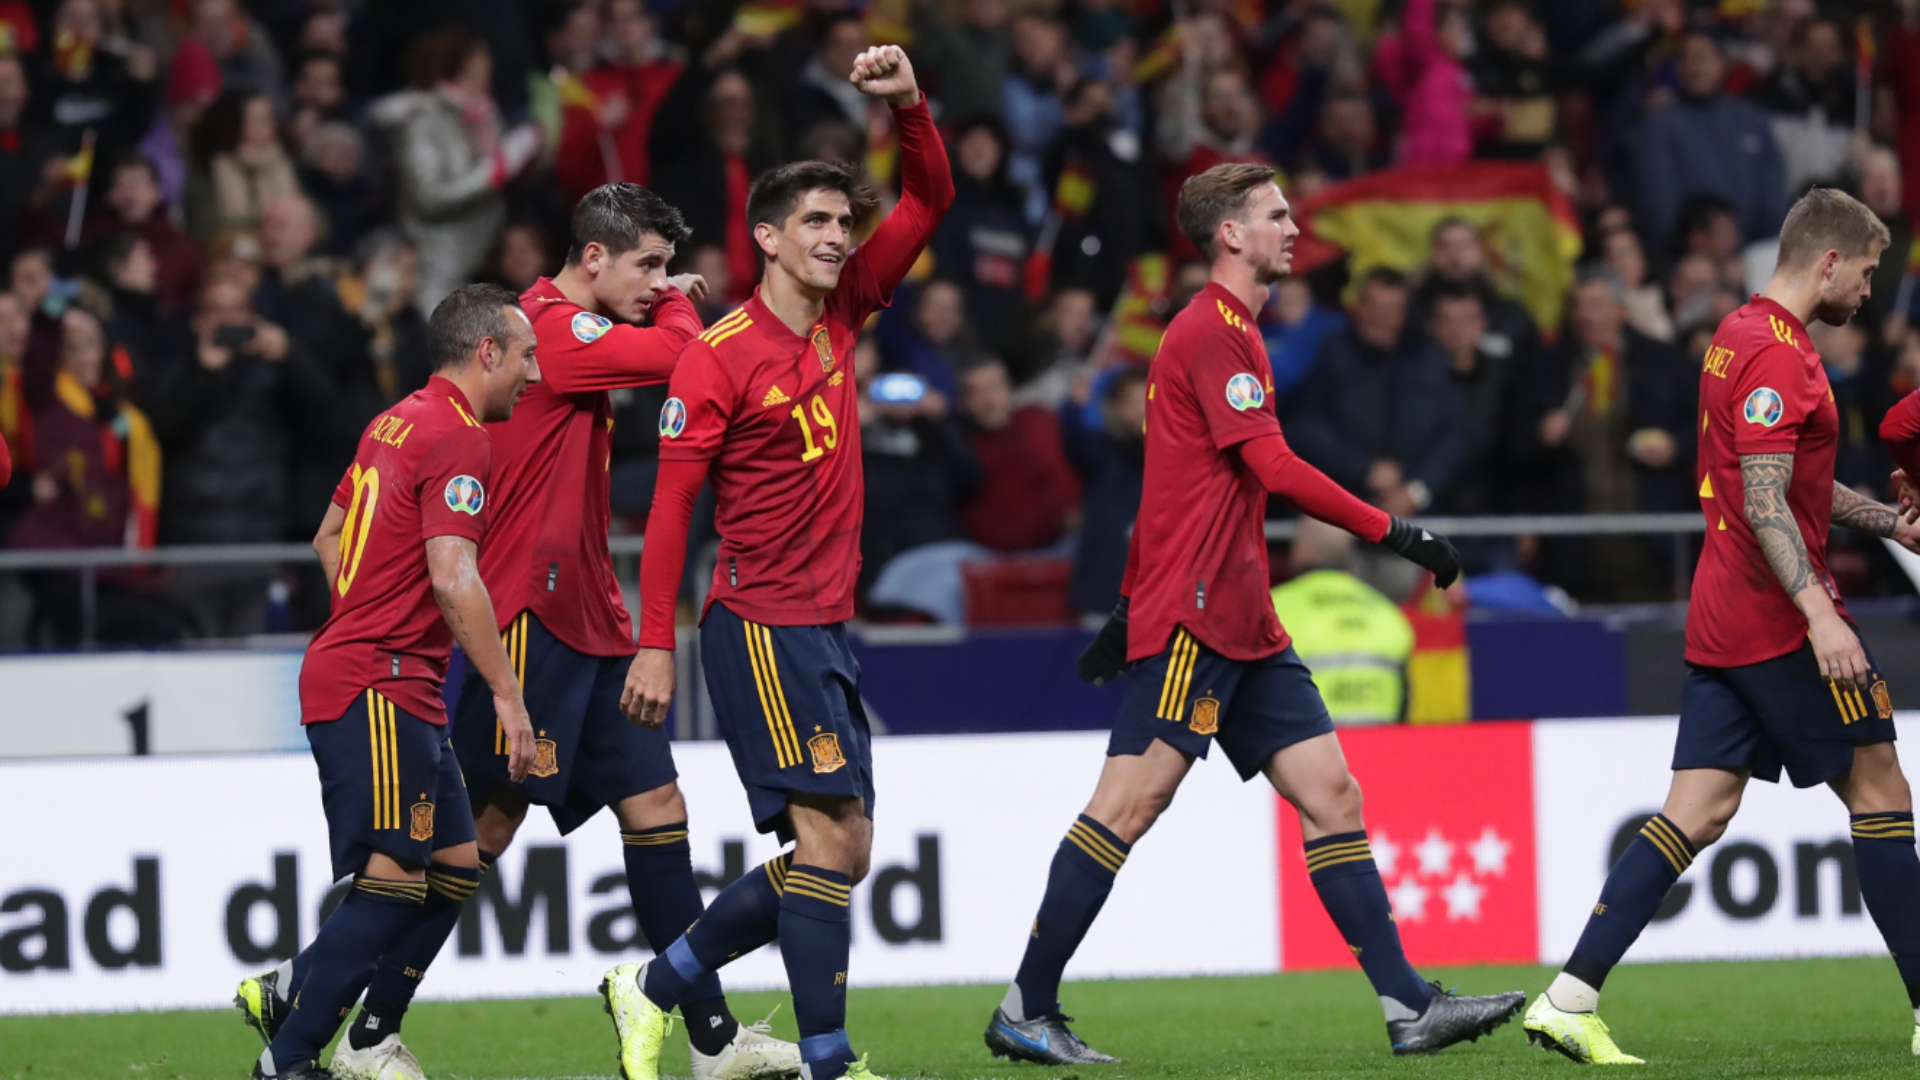 Spain World Cup 2020 Squad.Spain 5 0 Romania La Roja Cap Off Euro 2020 Qualifying In Style